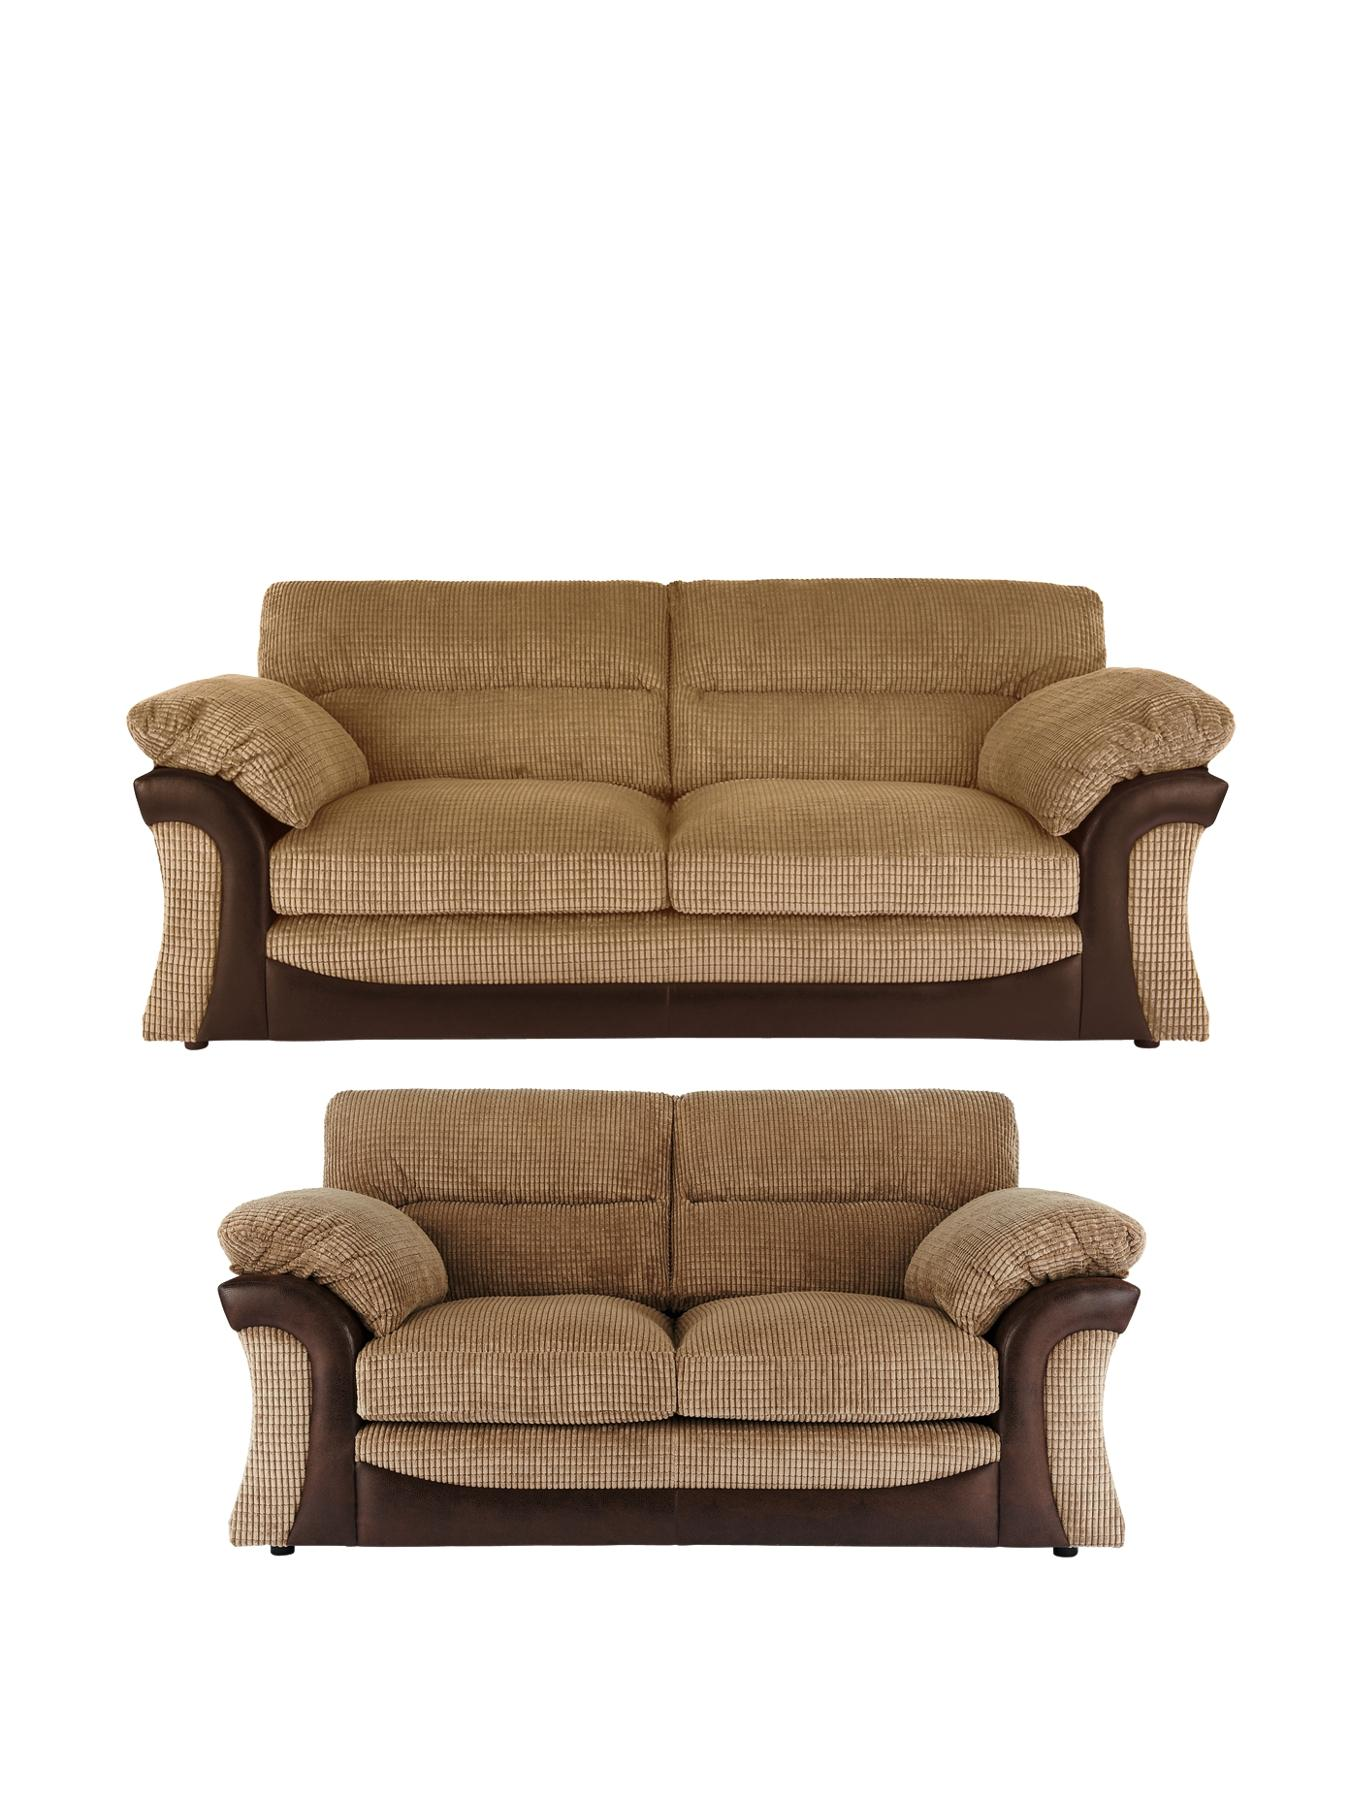 Rapide 3-Seater + 2-Seater Sofa Set, Chocolate,Charcoal